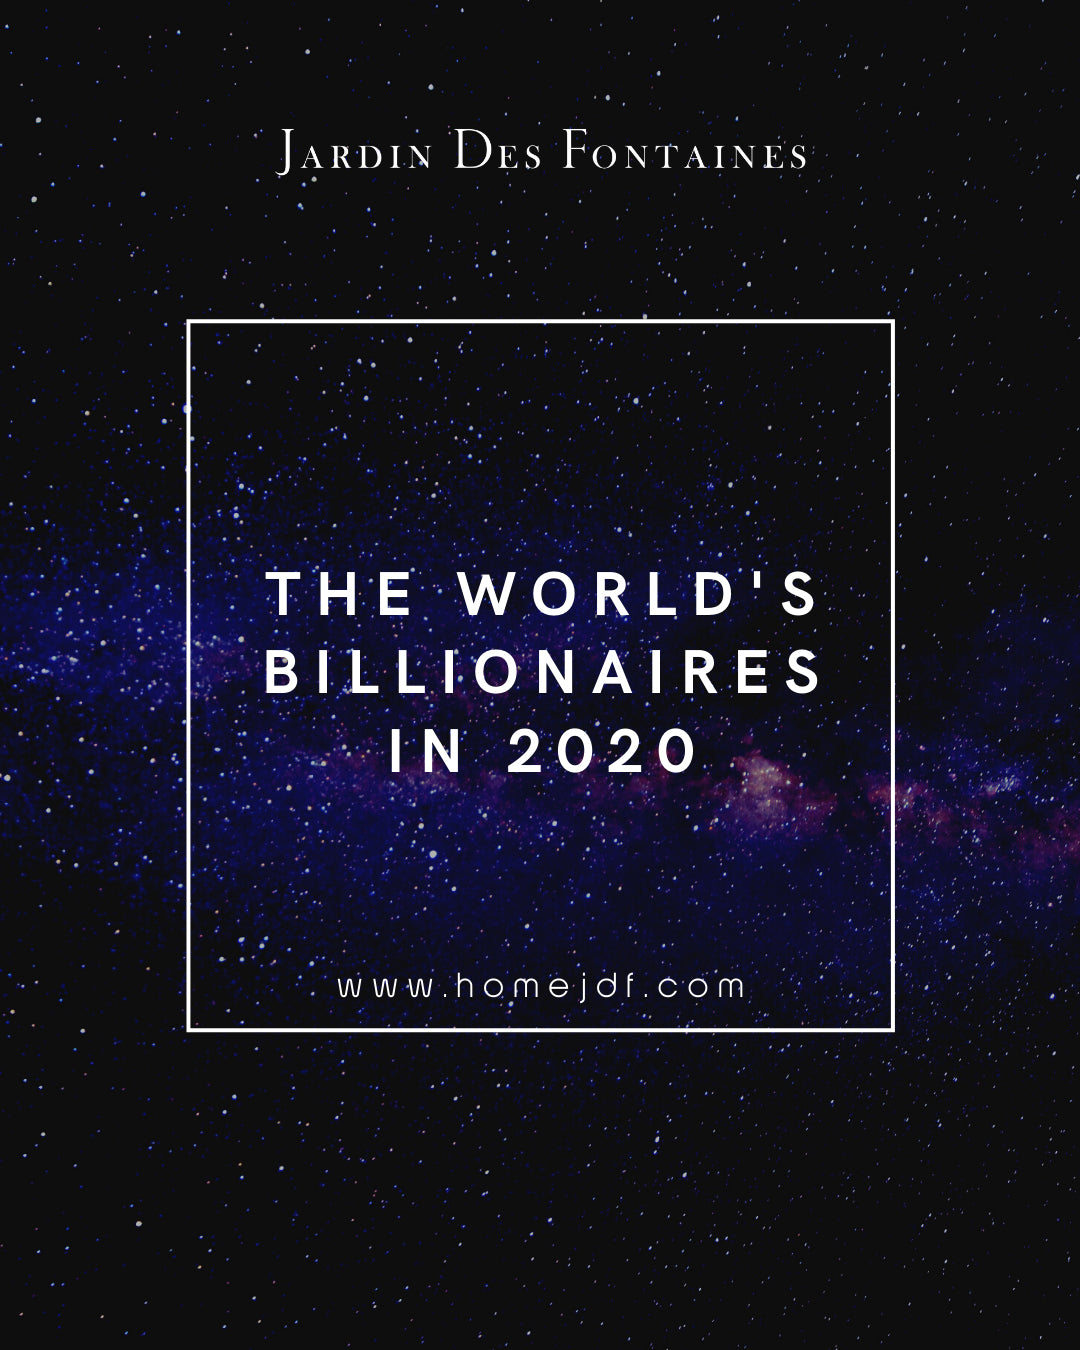 The World's Billionaires The Richest People in 2020, Amazon founder and CEO Jeff Bezos